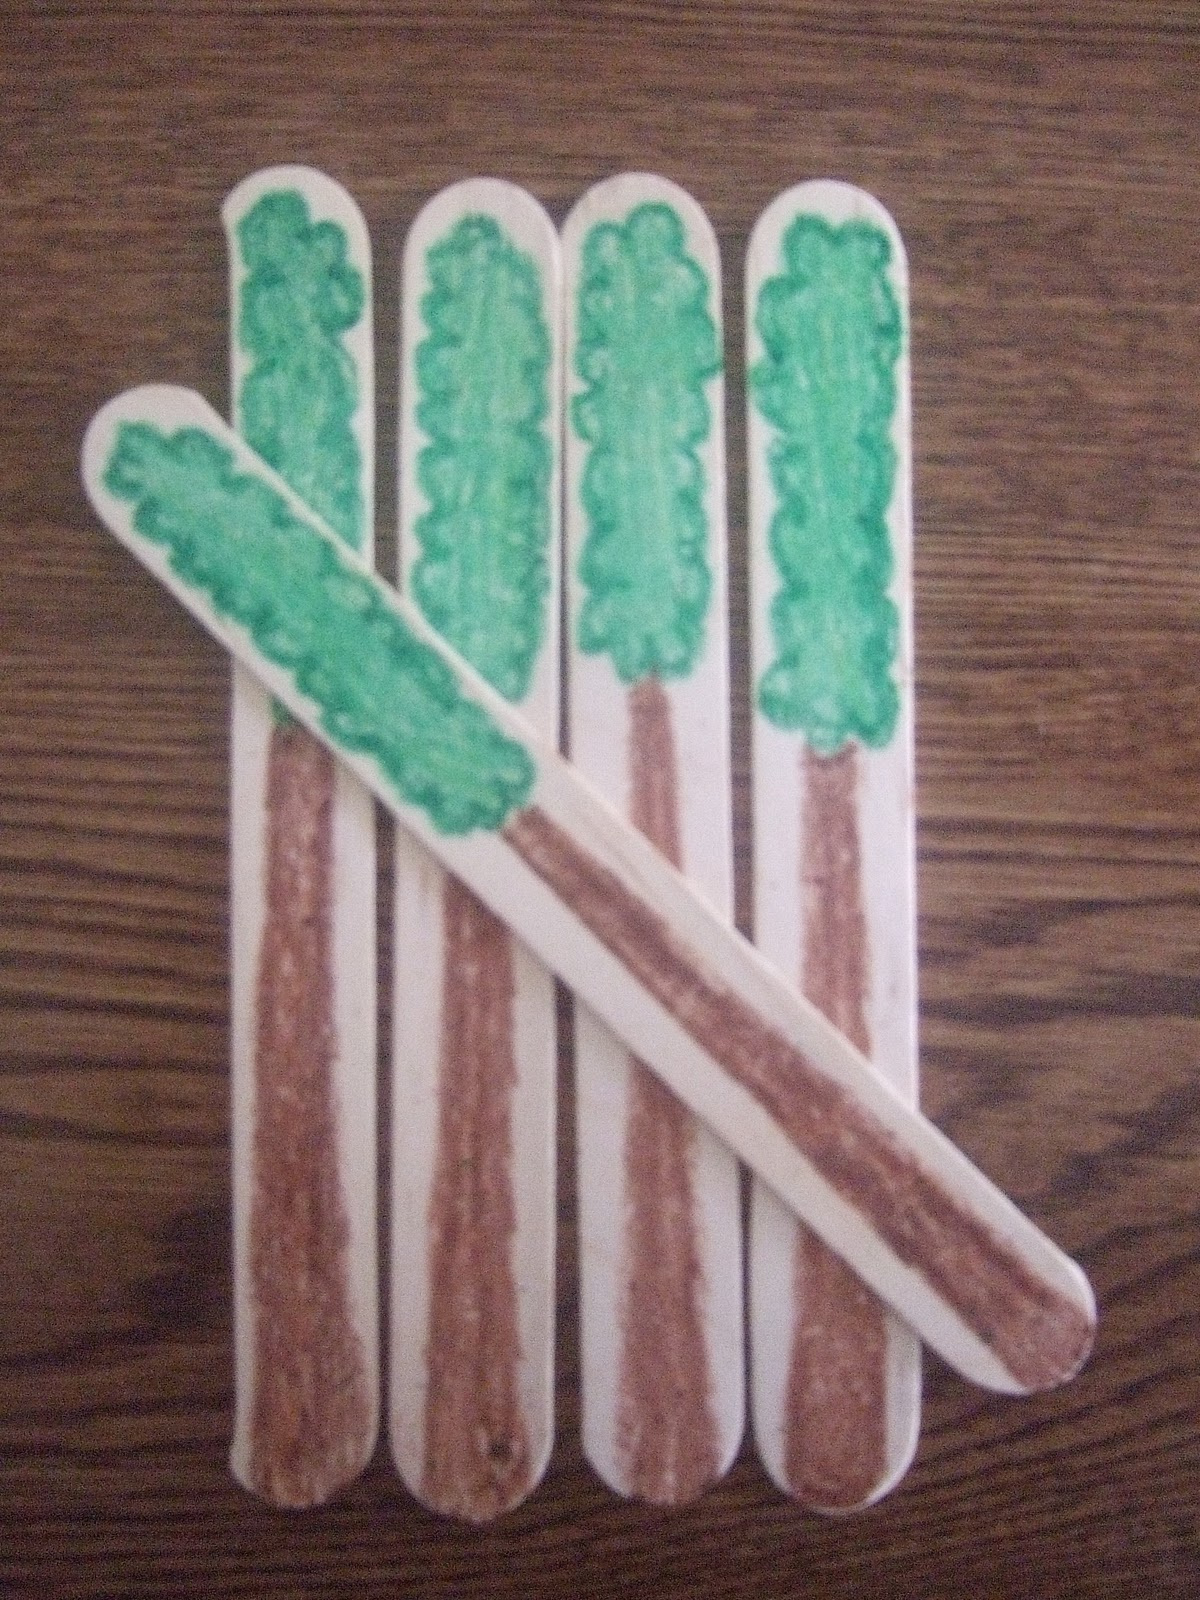 tally stick poem •popsicle stick tally mark game (use with the tally mark poem to introduce tally mark formation) •roll and tally (with directions to differentiate) •spin and tally (with four levels of spinners.